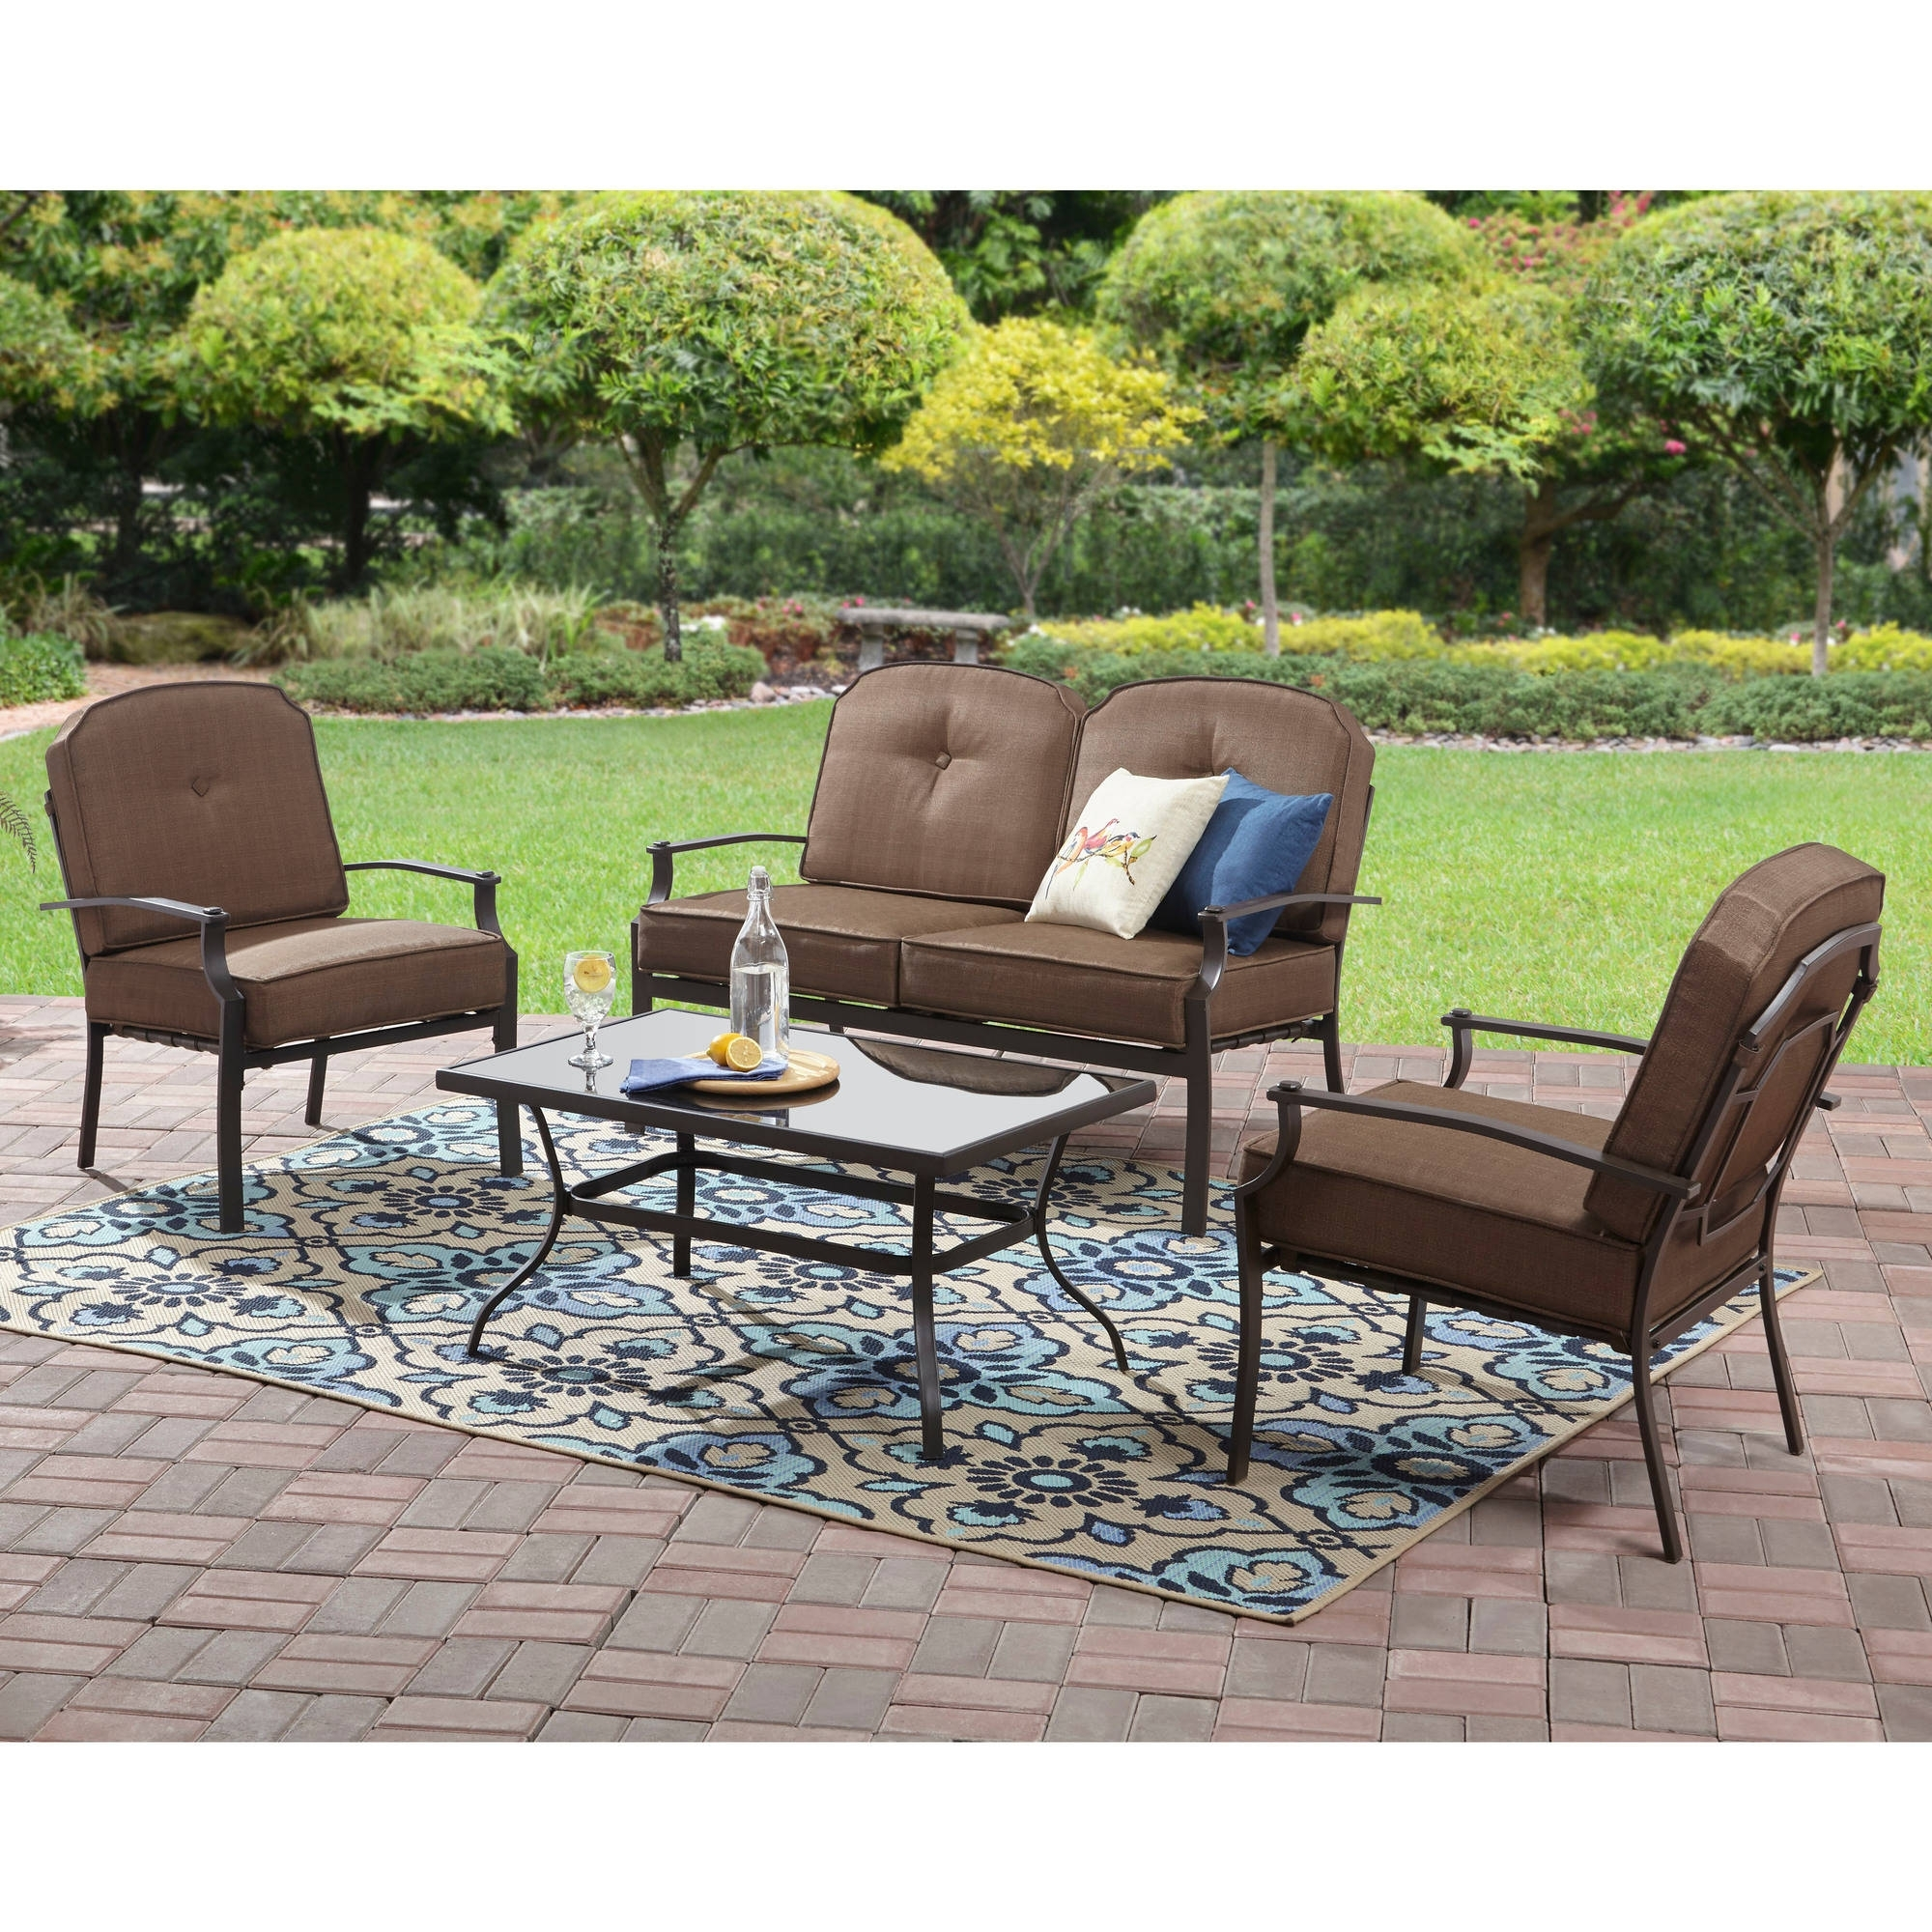 Patio Conversation Sets At Home Depot Intended For Recent Mainstays Spring Creek 5 Piece Patio Dining Set, Seats 4 – Walmart (View 6 of 20)